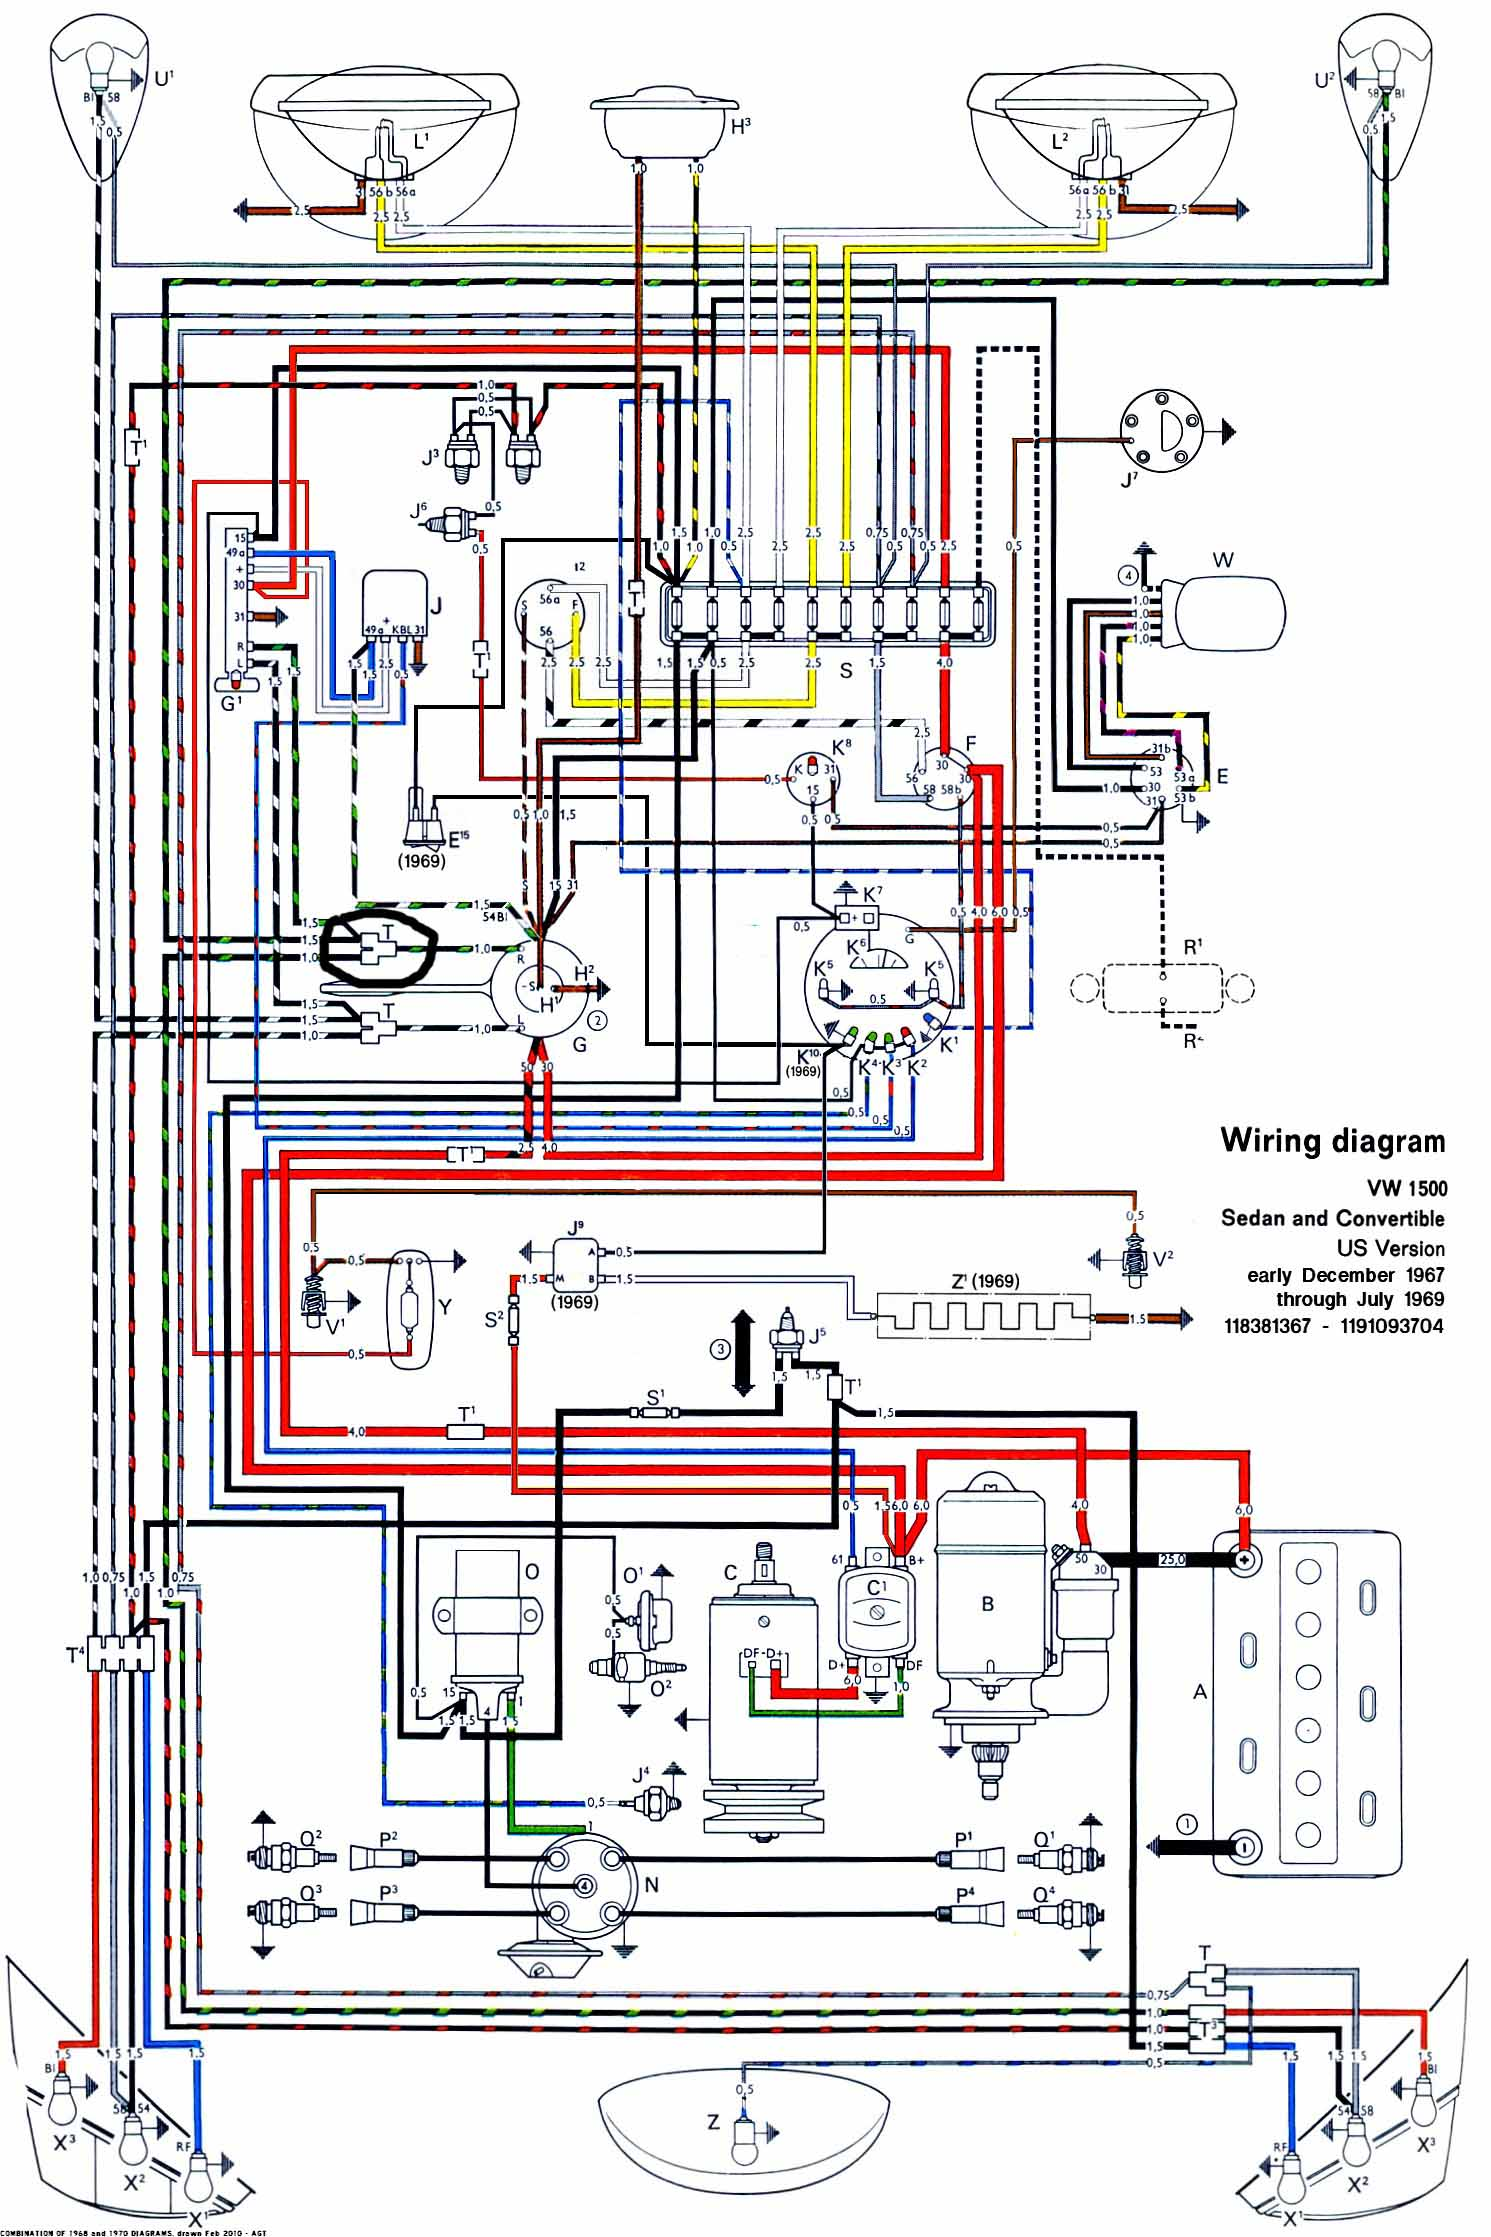 hight resolution of wiring diagram for 1971 vw beetle the wiring diagram 1960 vw beetle wiring harness 69 vw beetle wiring diagram